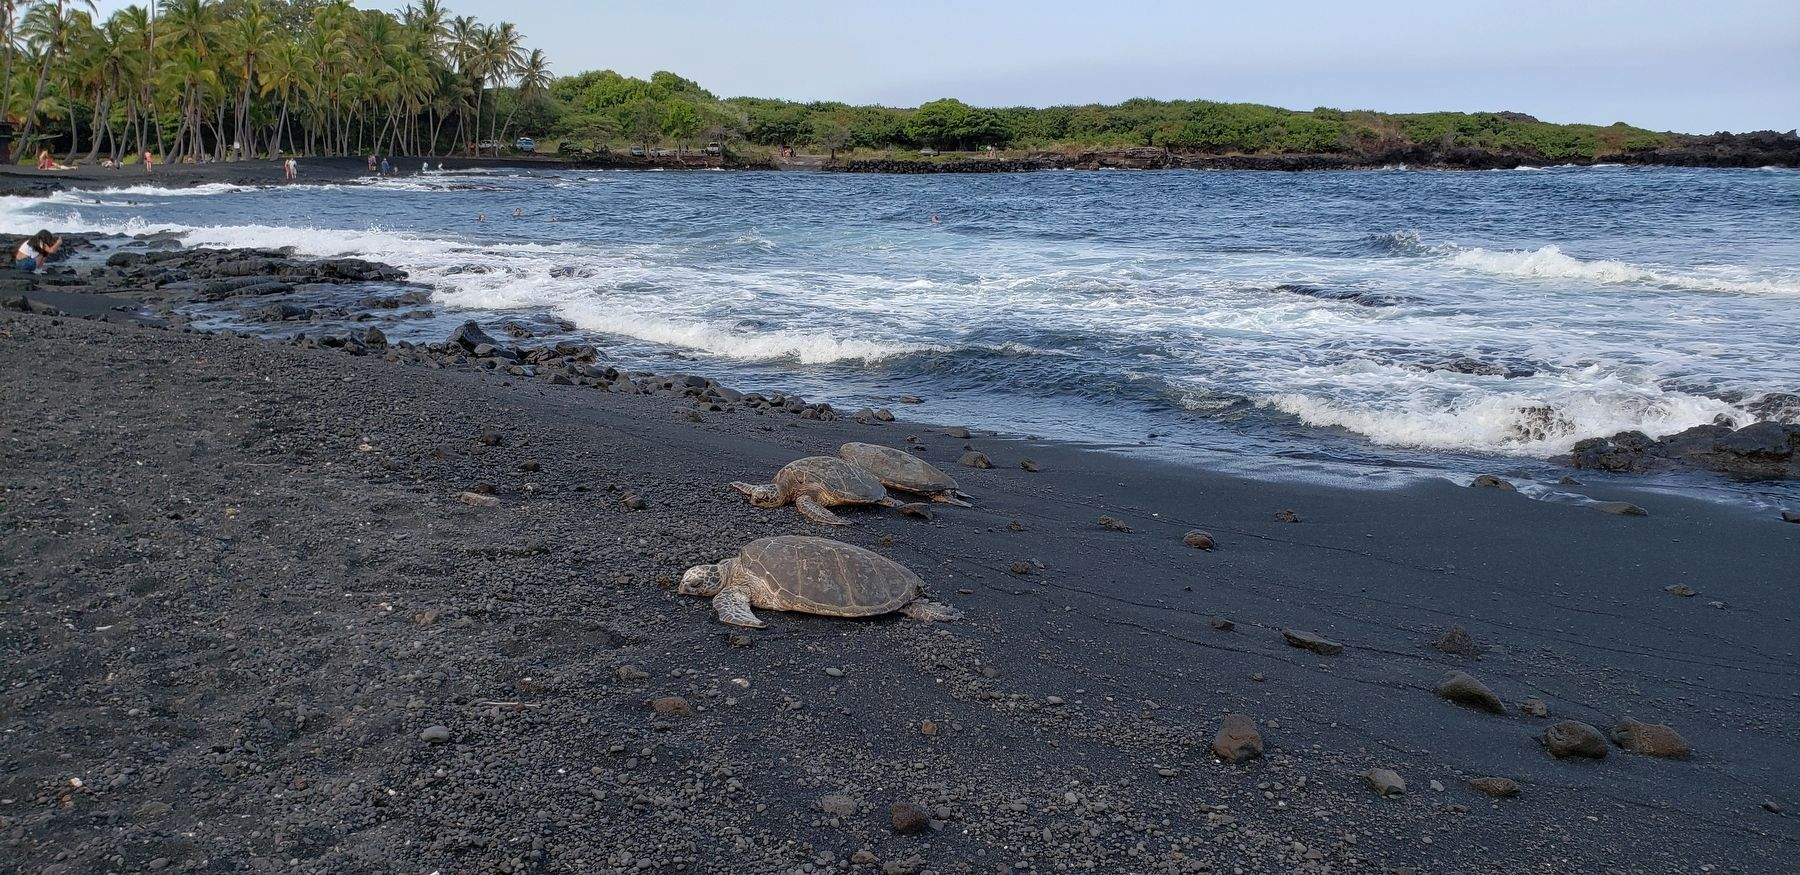 Turtles on Punalu'u Black Sand Beach (<i>view from near marker</i>) image. Click for full size.